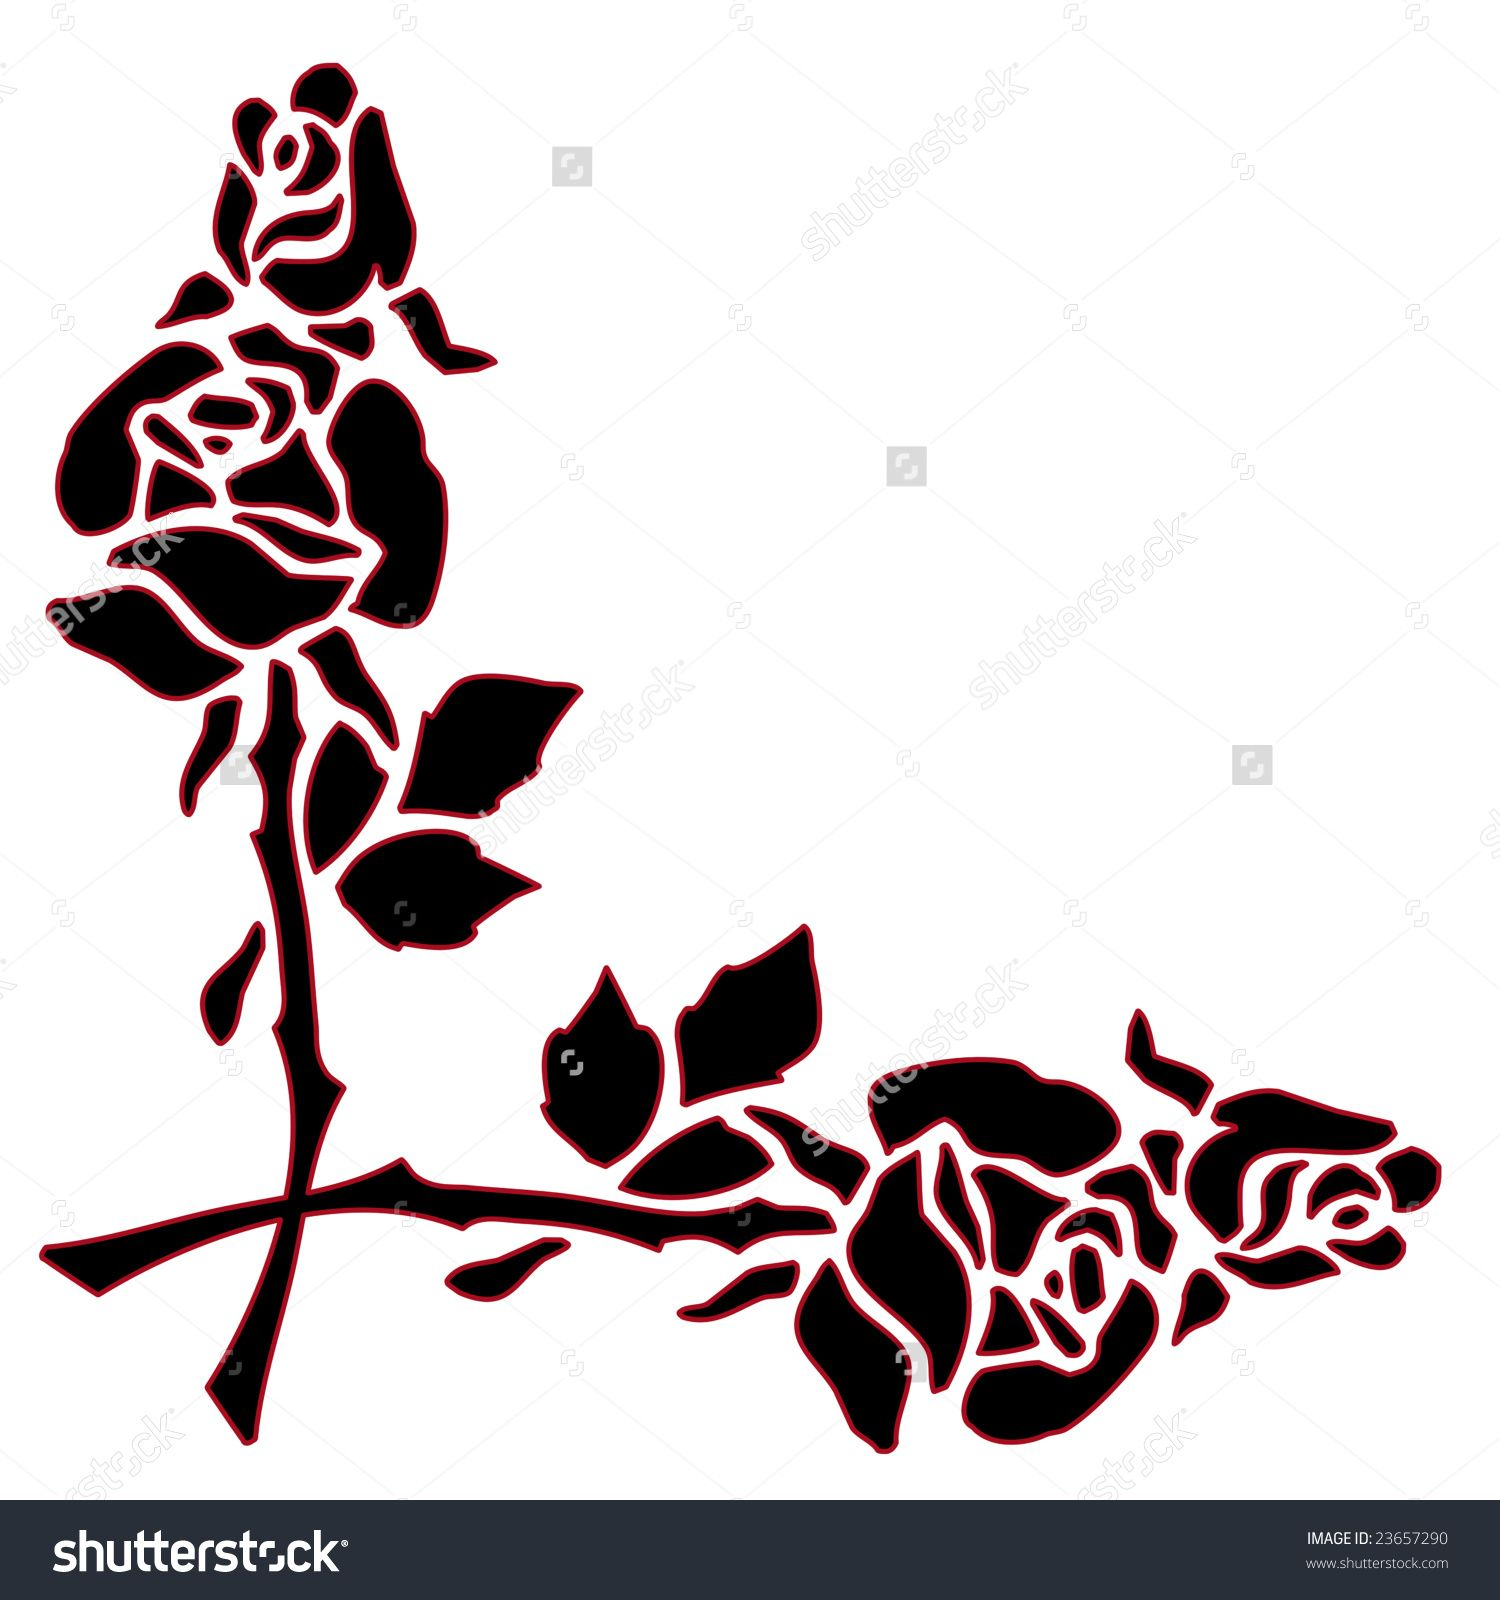 1500x1600 Black Silhouette Of Rose Flowers Outlined With Red As A Border